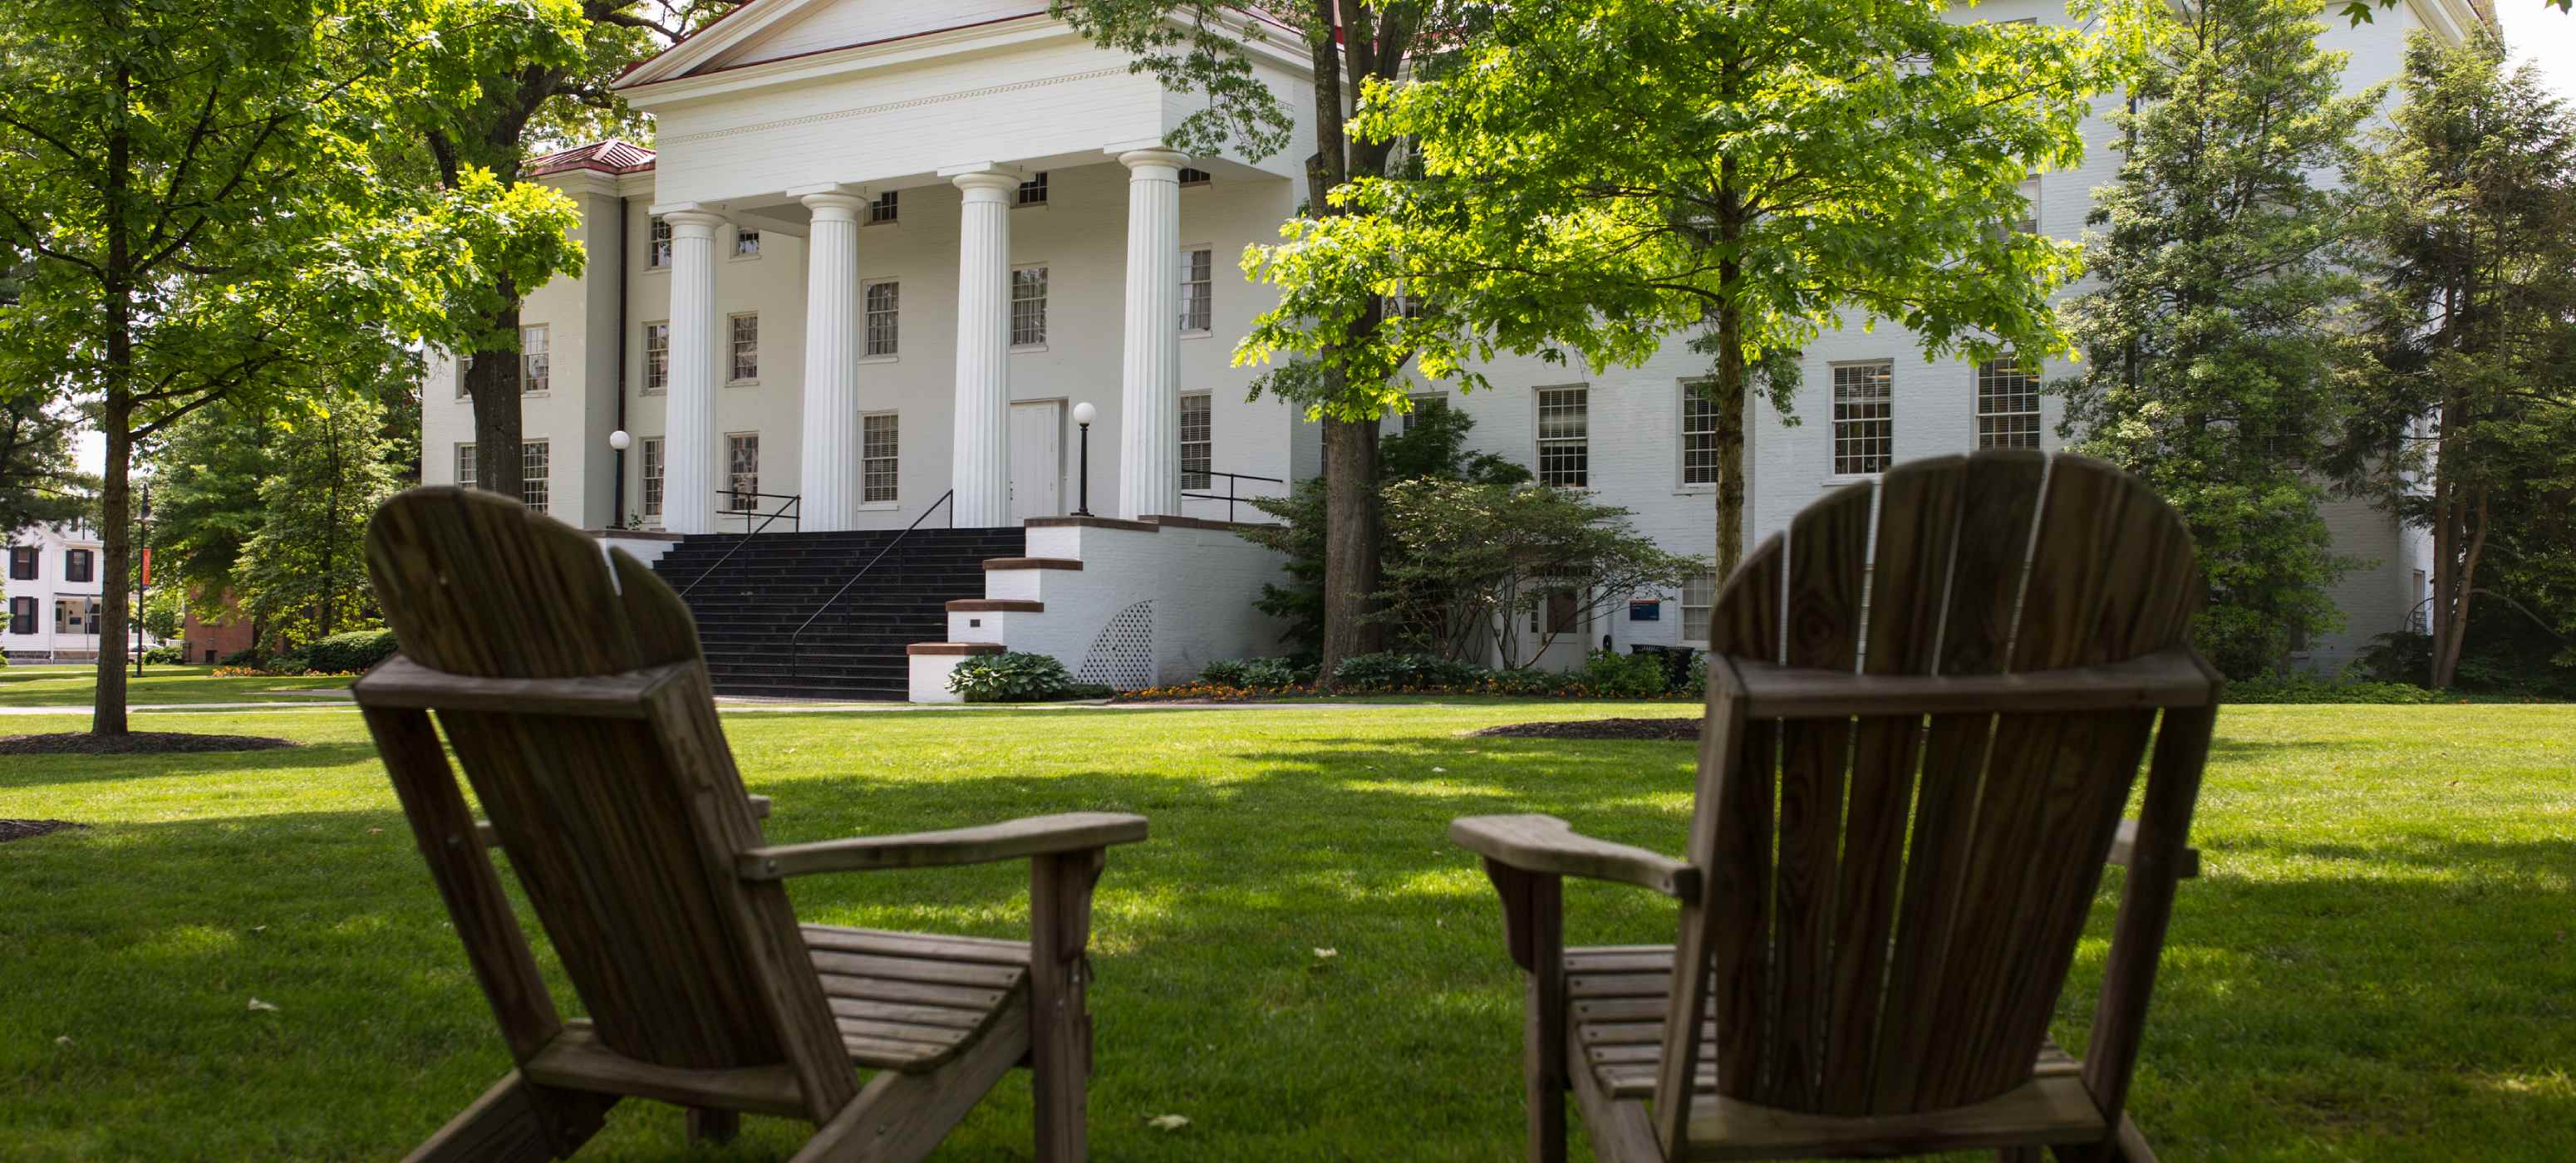 Gettysburg College campus with empty chairs